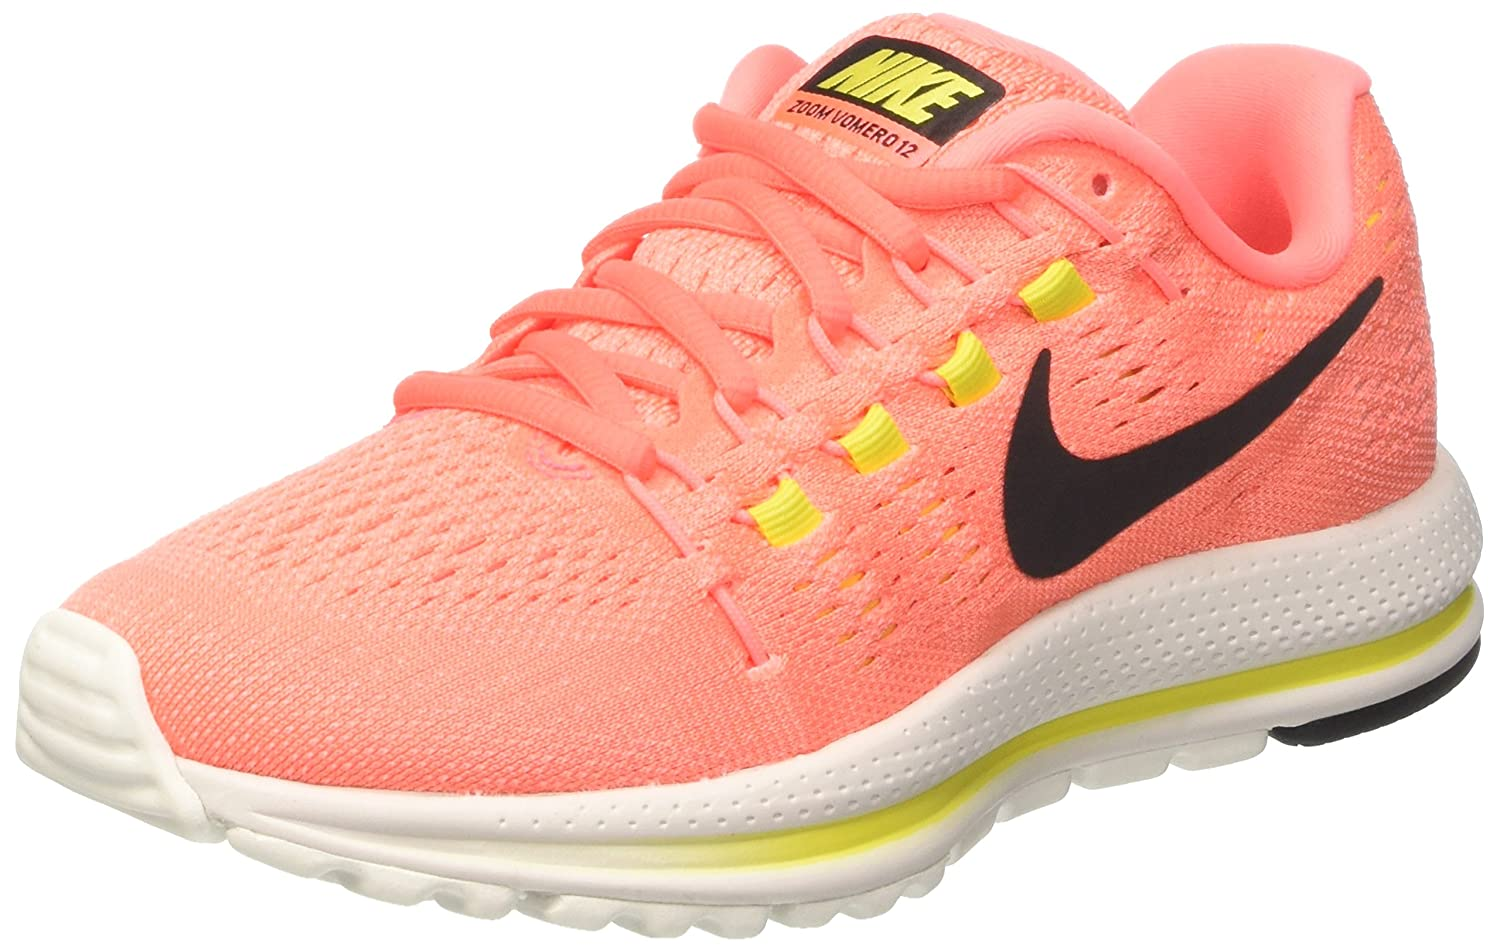 new product 22eef a2aa5 Amazon.com   Nike Women s AIR Zoom Vomero 12 Running Shoes 863766-600 Size  5 D(M) US   Road Running